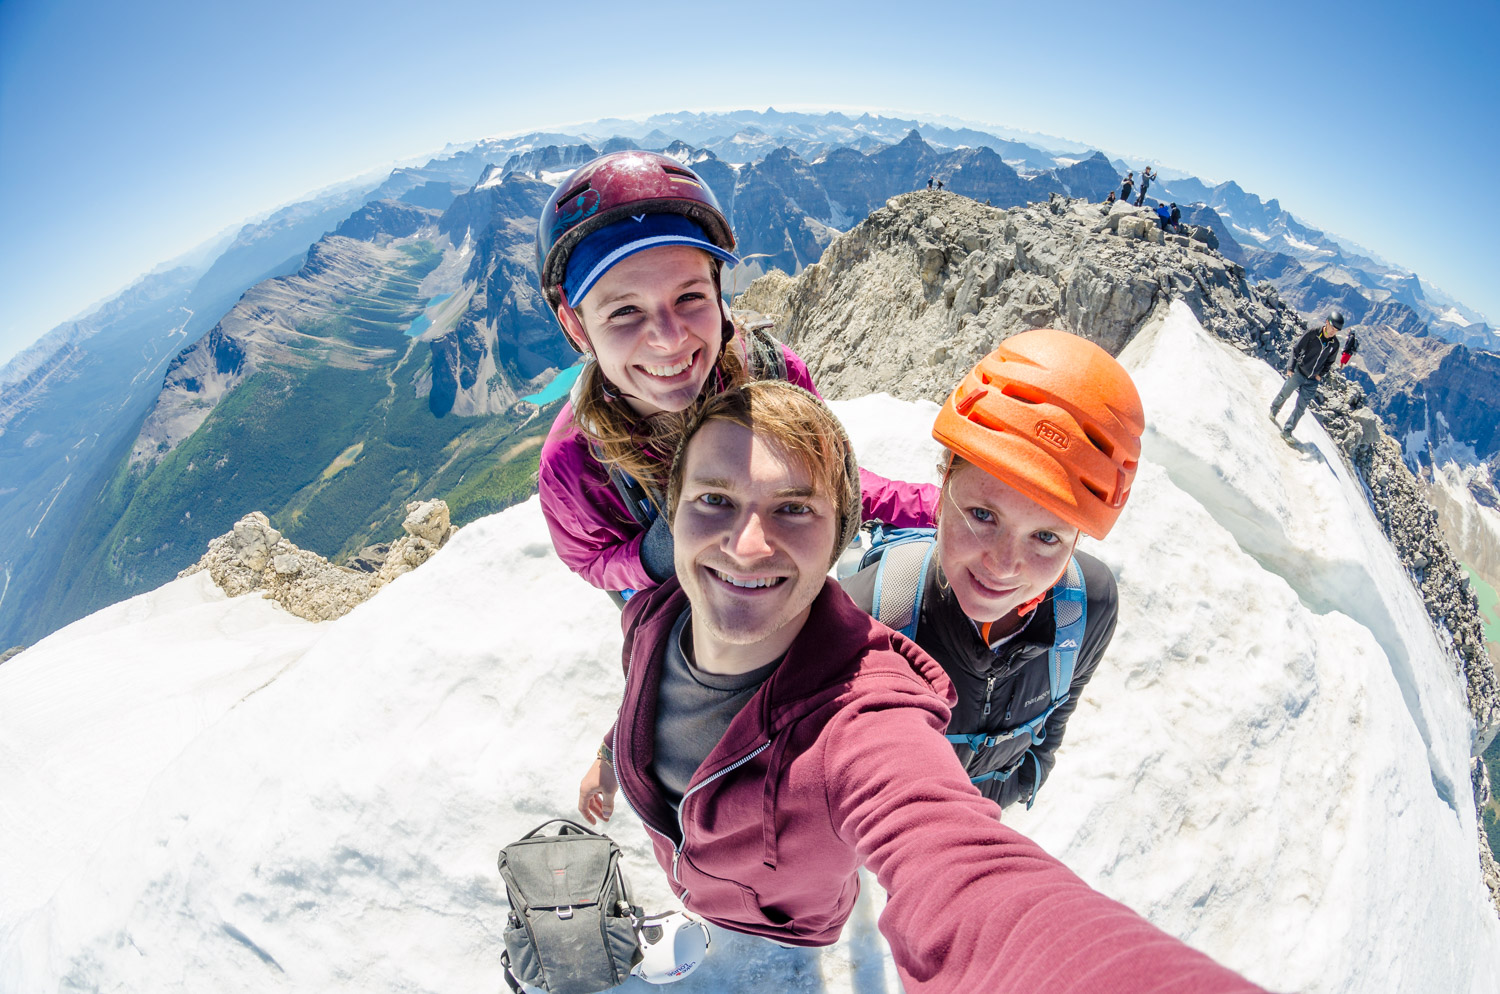 Selfie on top of the ice cap. That feeling you get when you conquer a big peak makes the struggle totally worth it.